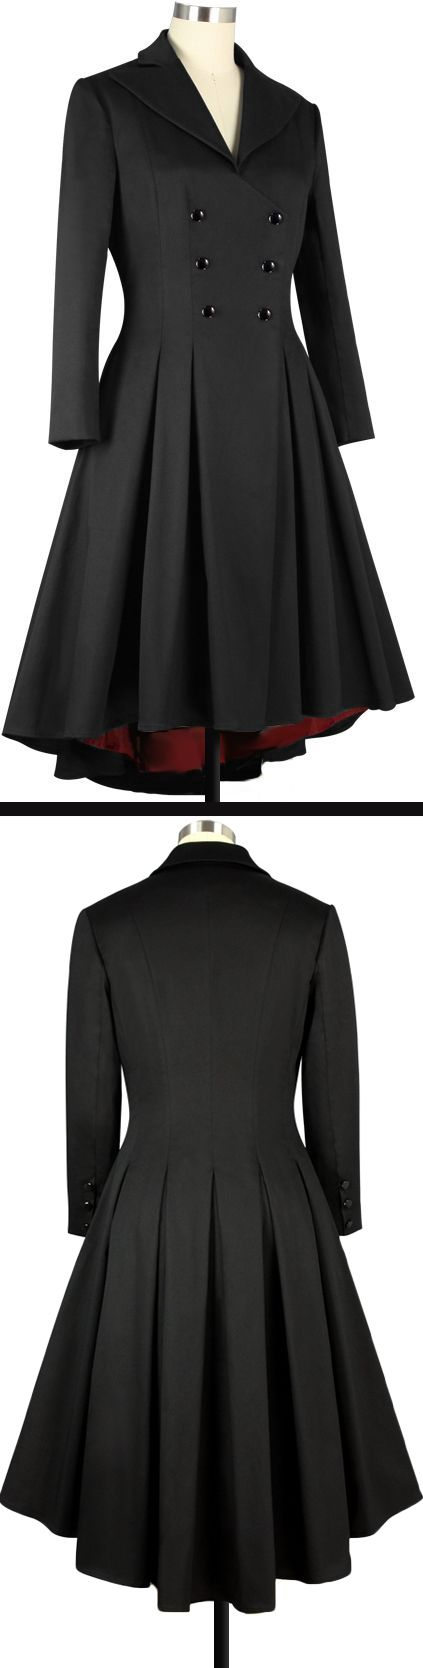 Black and Red  Pleated Swing Coat Chic Star Design by Amber Middaugh  and Yuliana Arbona  $79.95 Plus Size 89.95